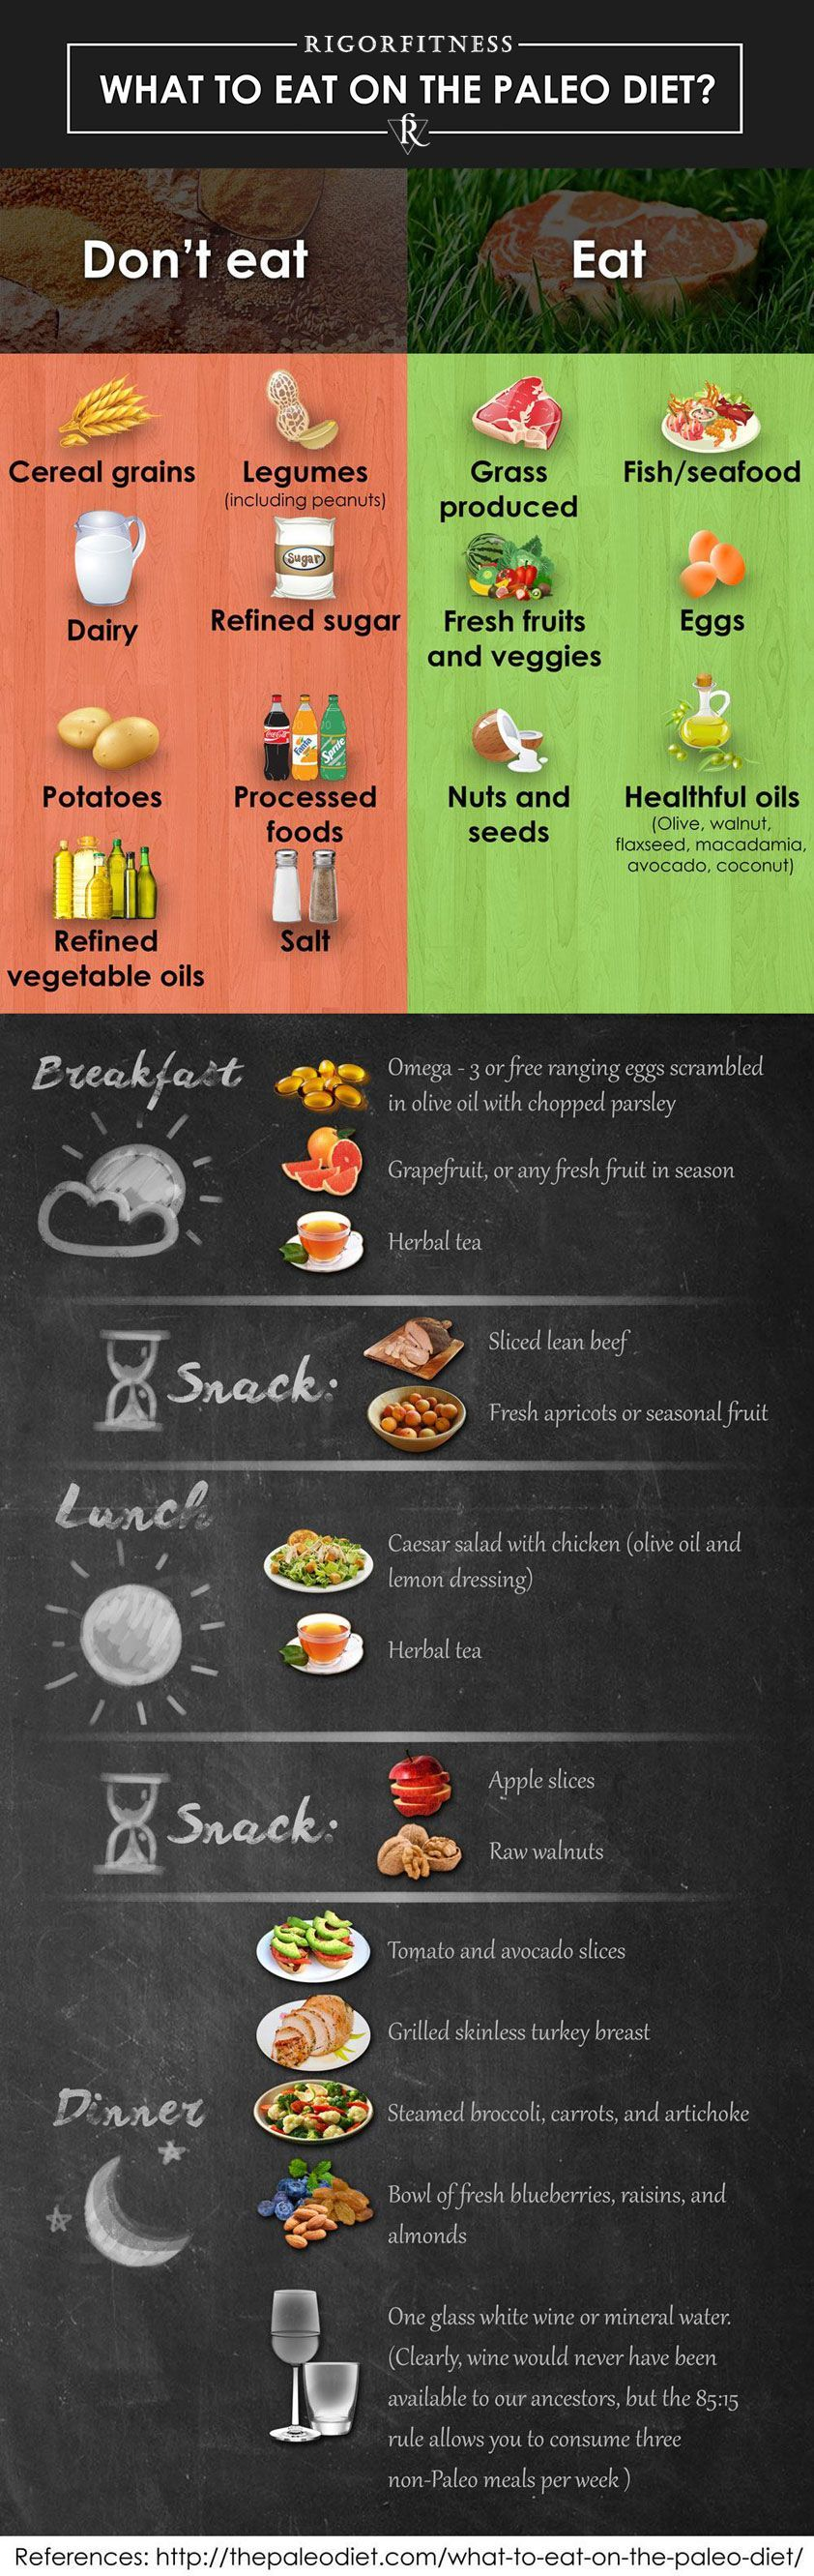 what-to-eat-on-the-paleo-diet-infographic